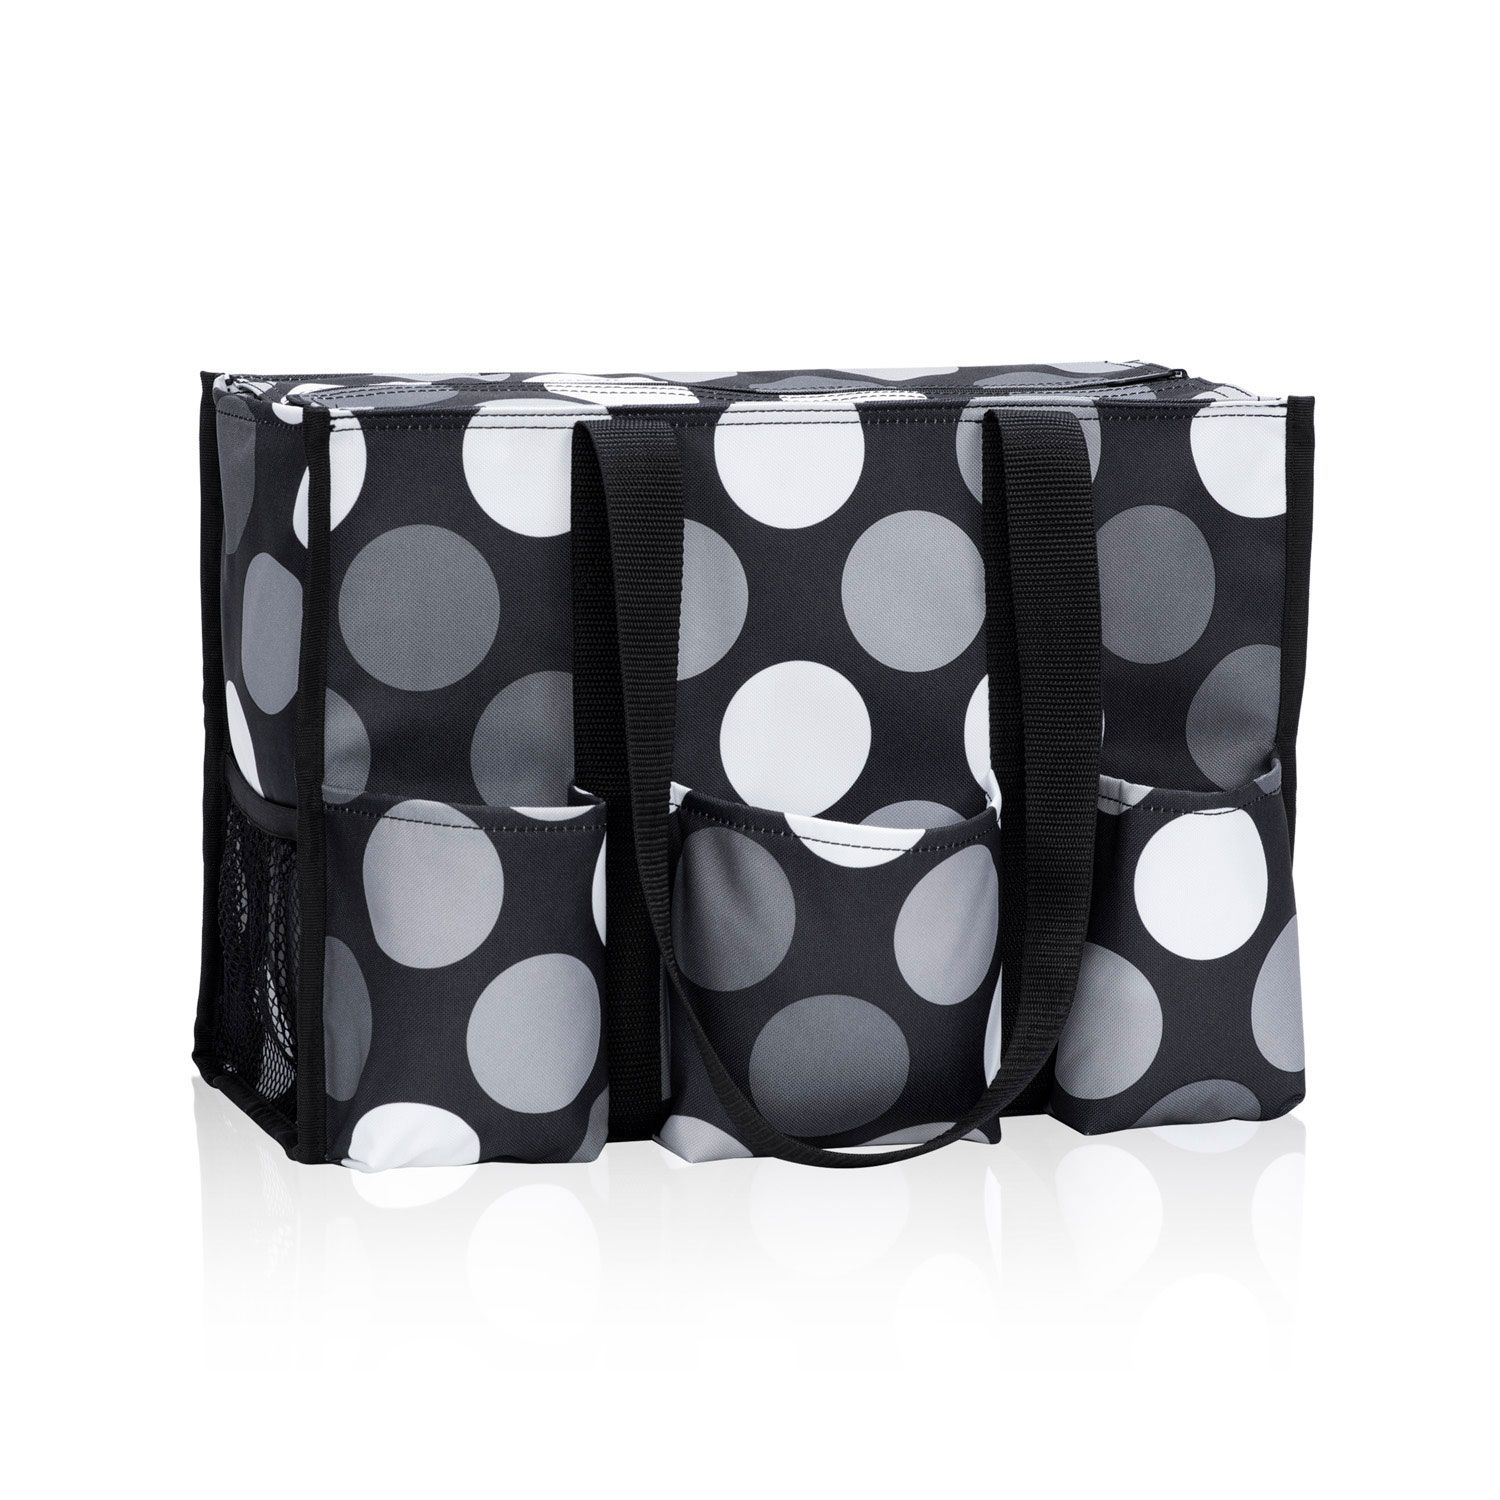 The Same Size As Our Classic Organizing Utility Tote With Seven